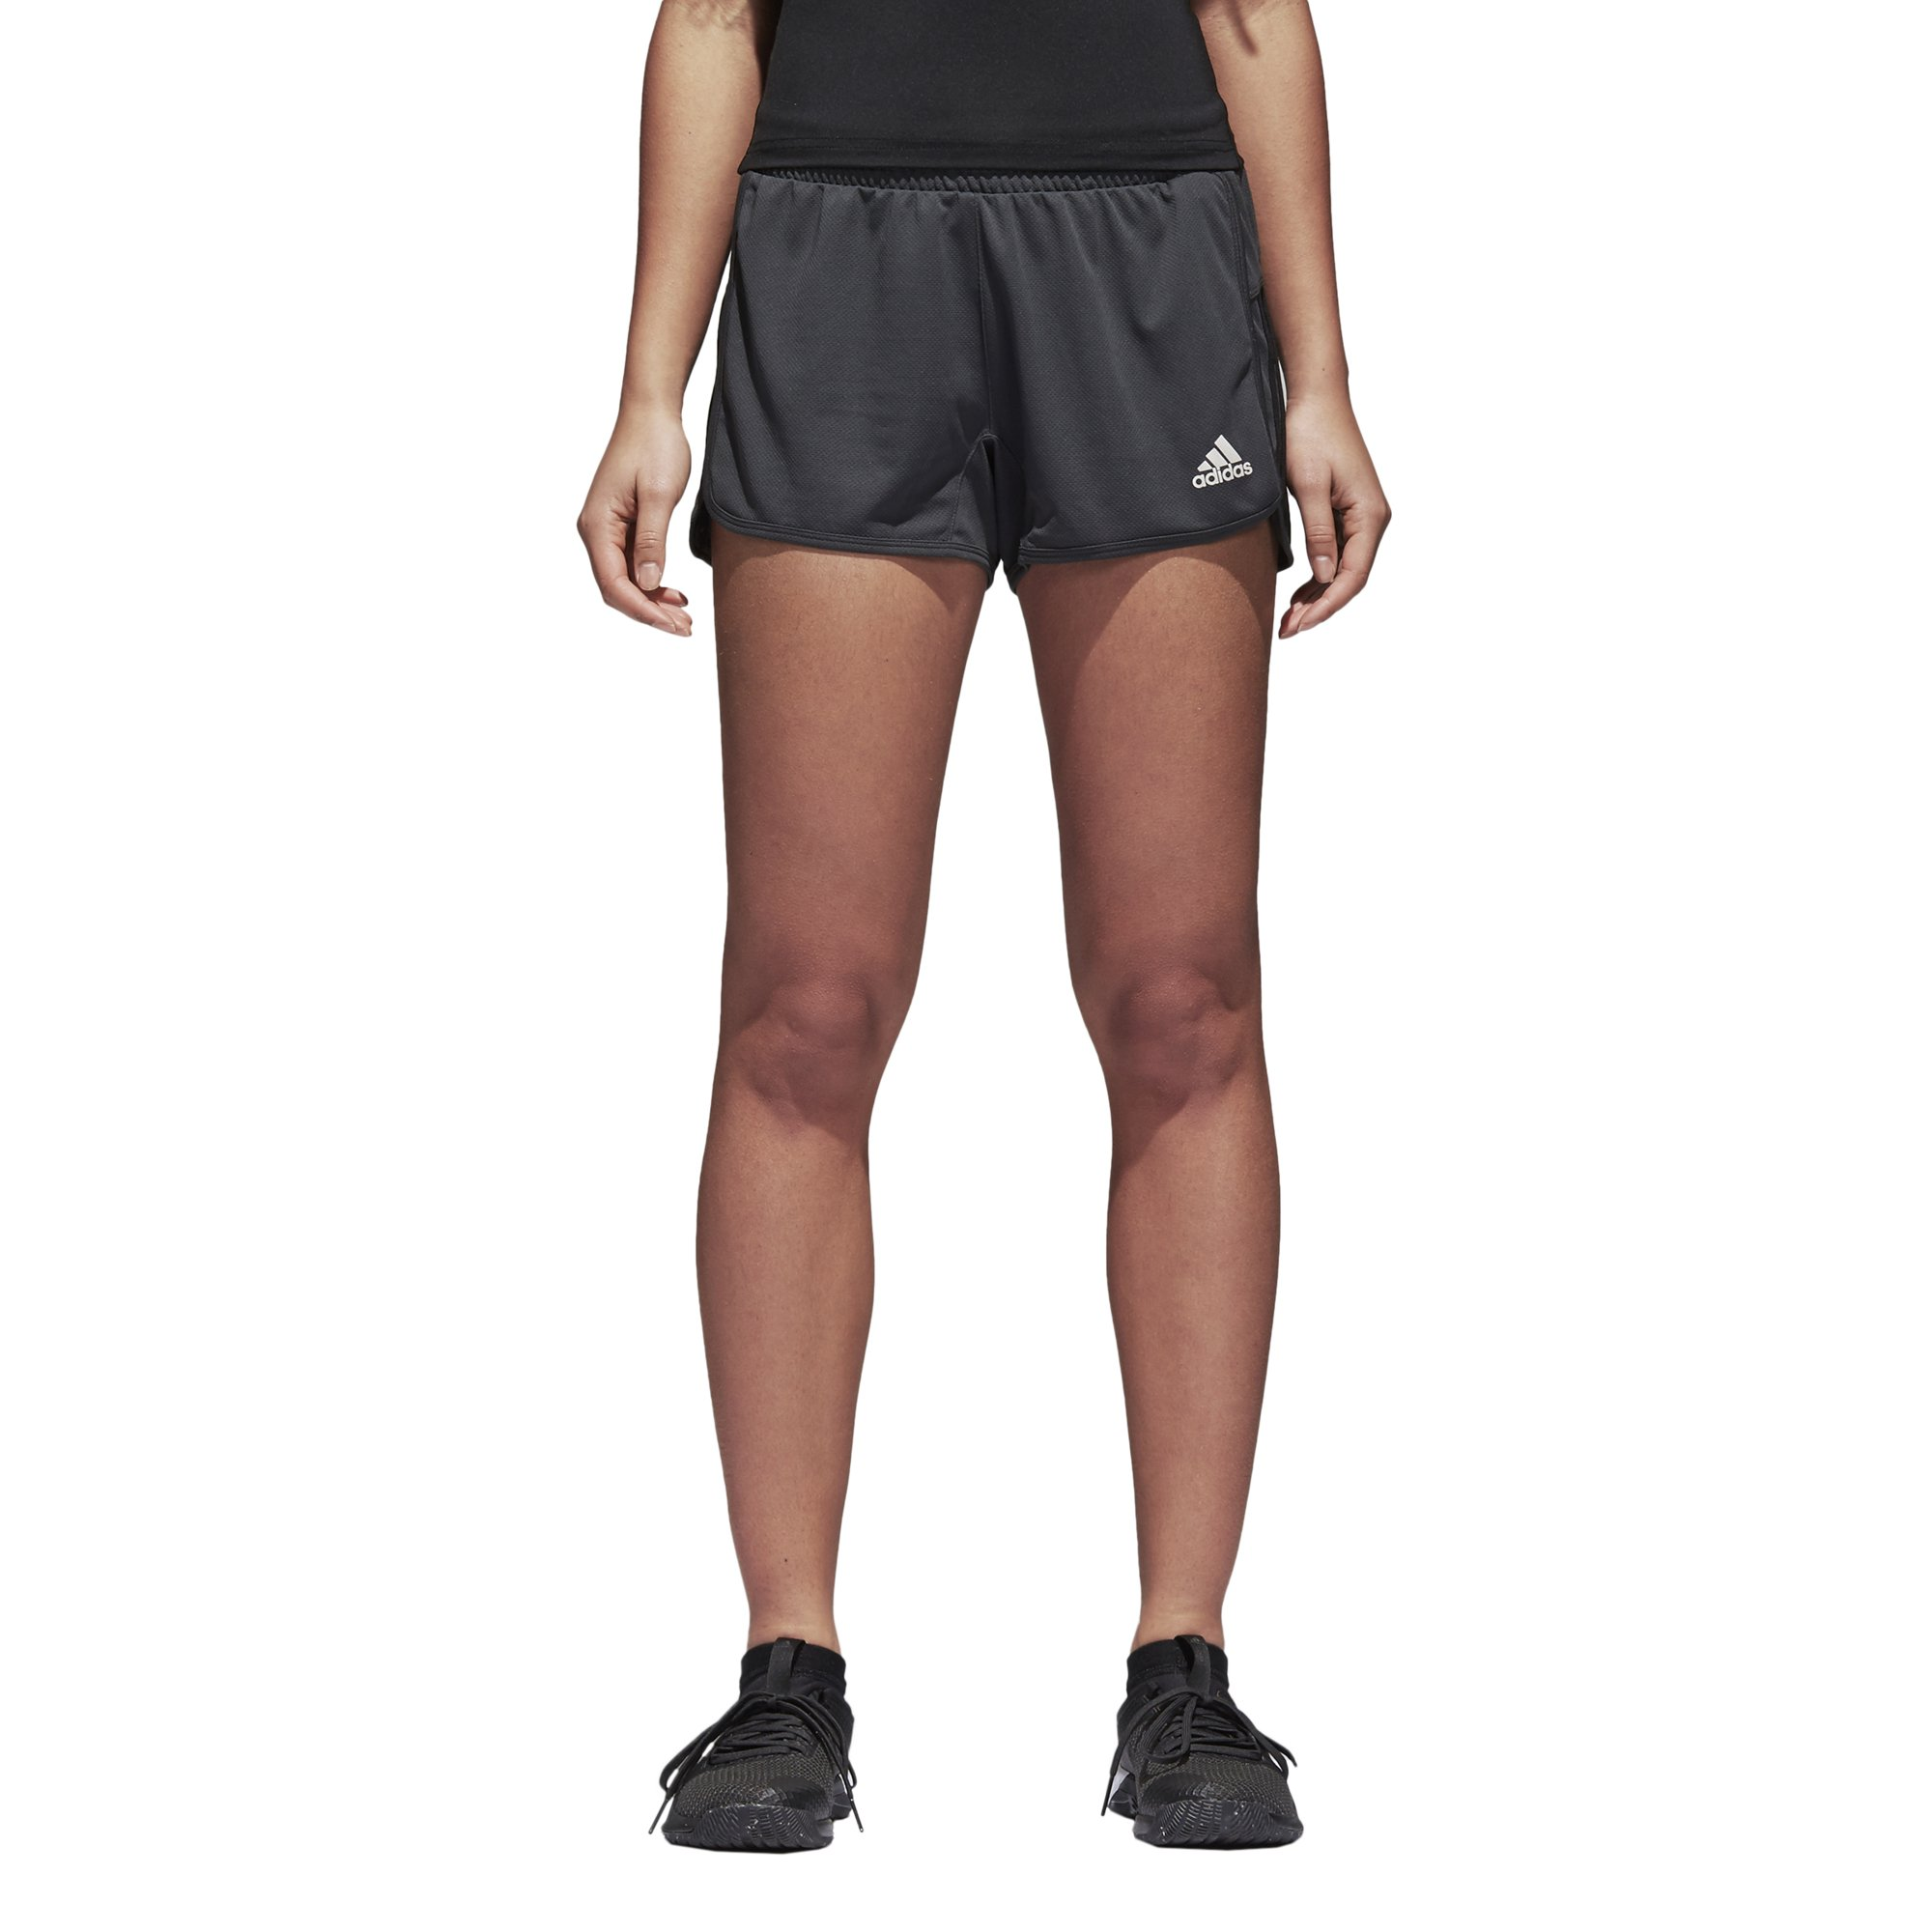 adidas Women's Designed 2 Move Knit Shorts, Carbon/Black, Large by adidas